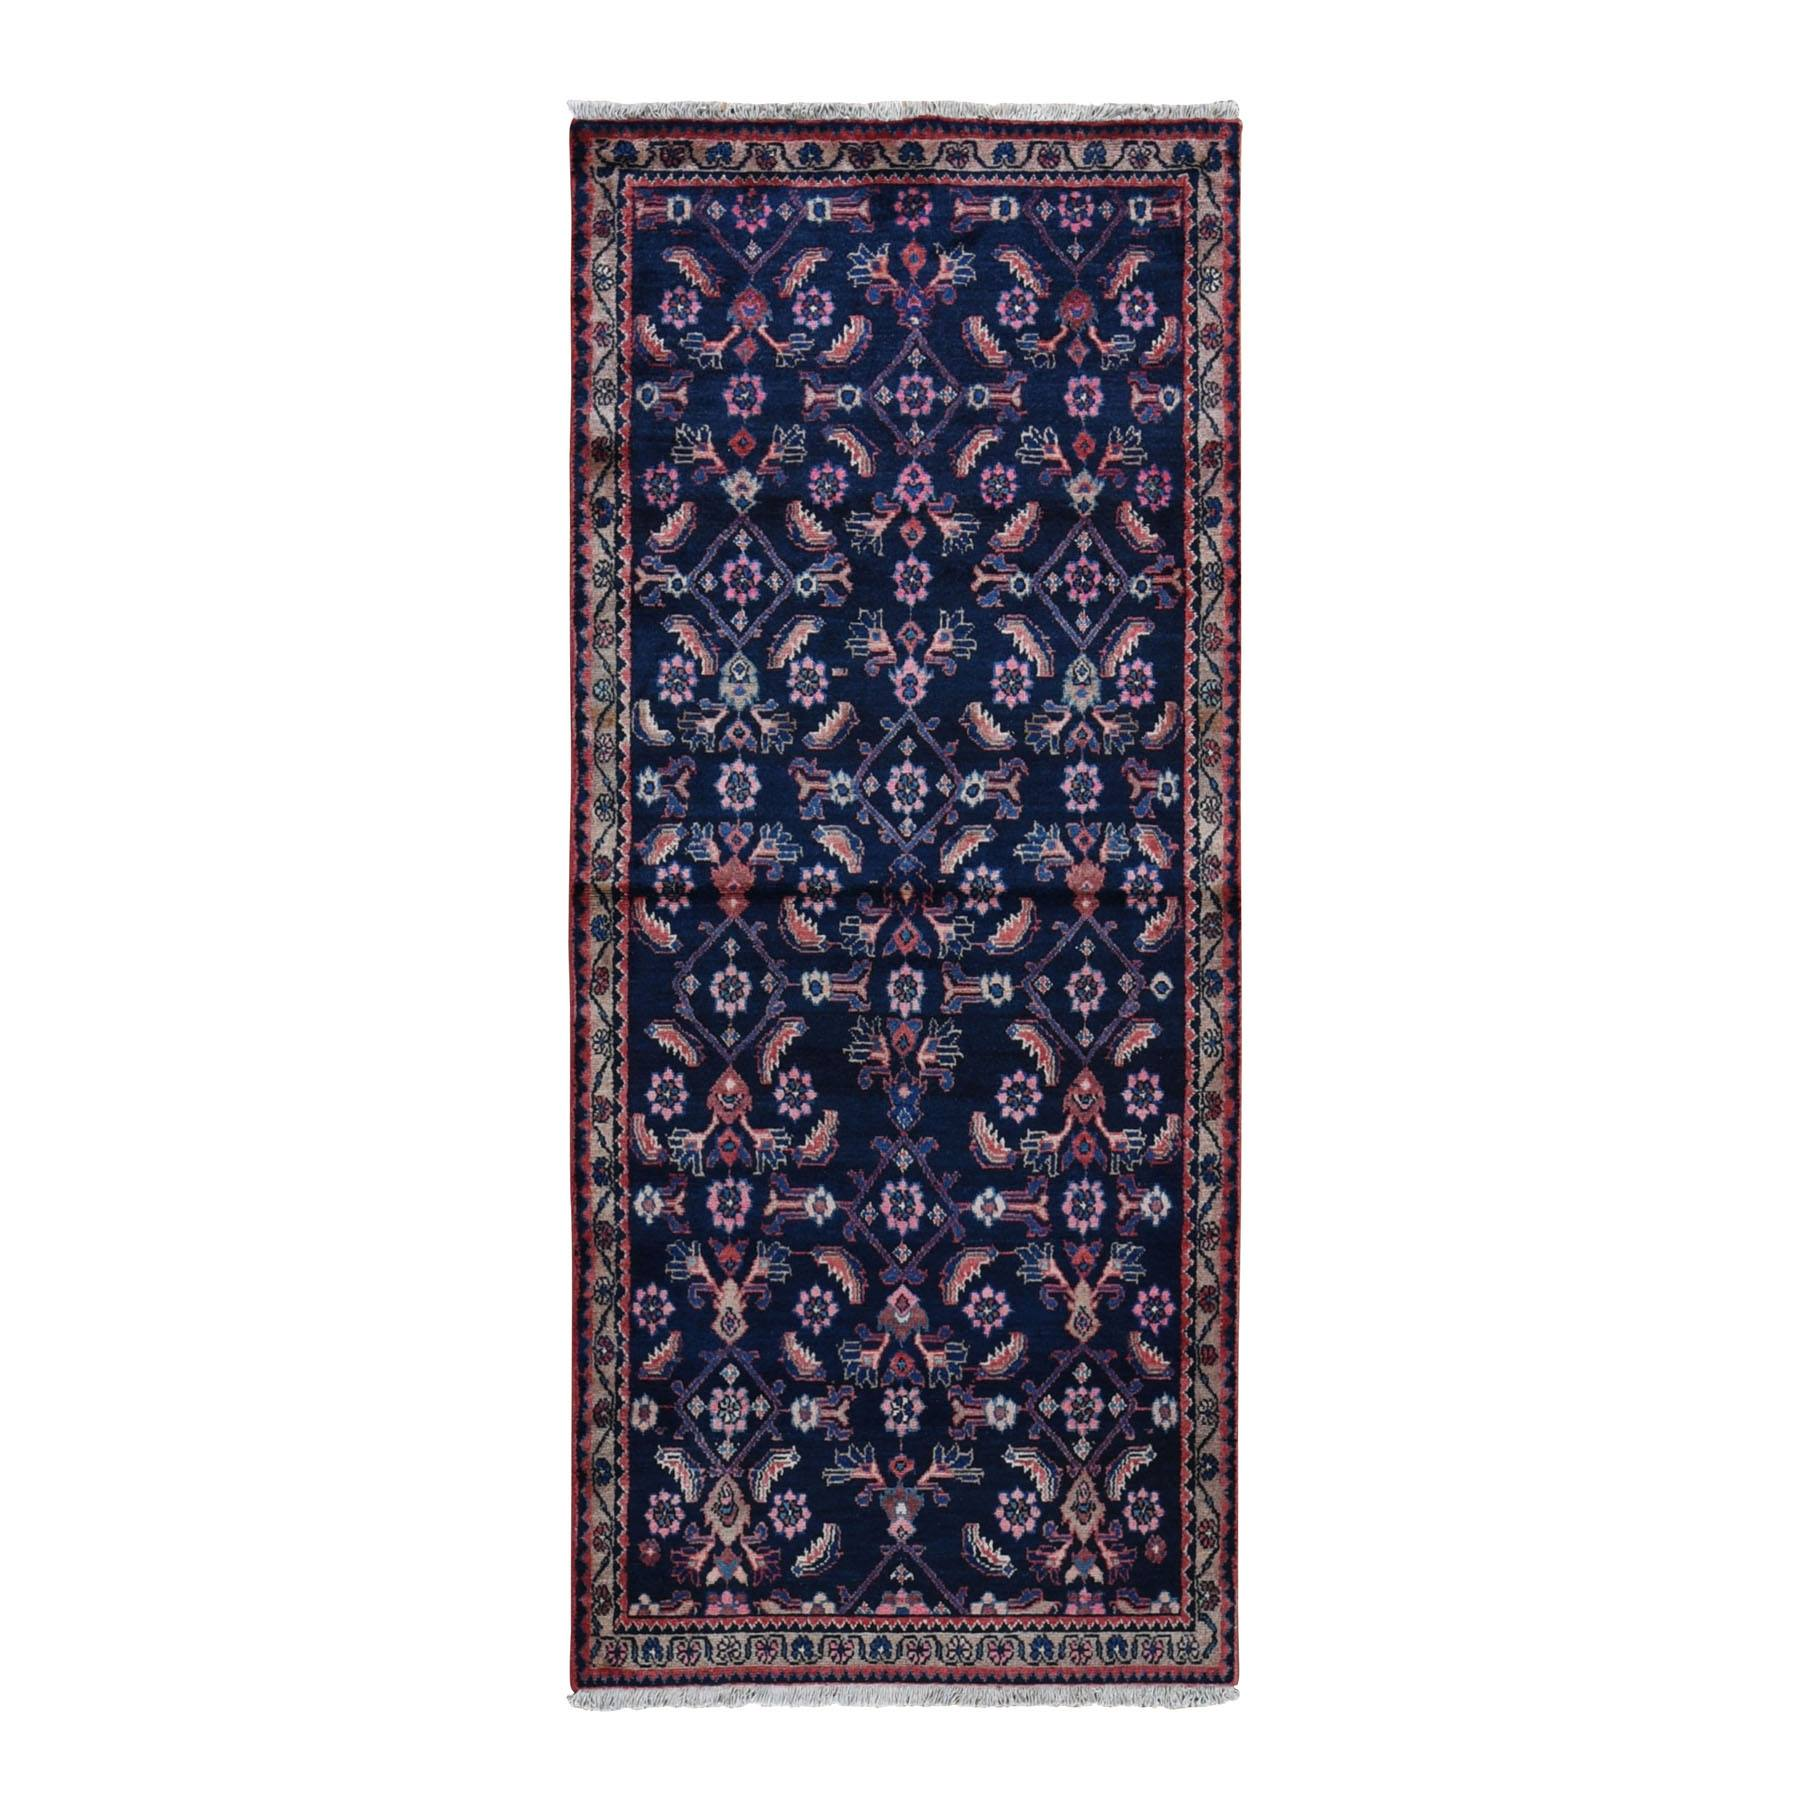 "3'5""x8' Navy Blue Vintage Persian Malayer Herat Fish Design Wide Runner Hand Knotted Bohemian Rug"